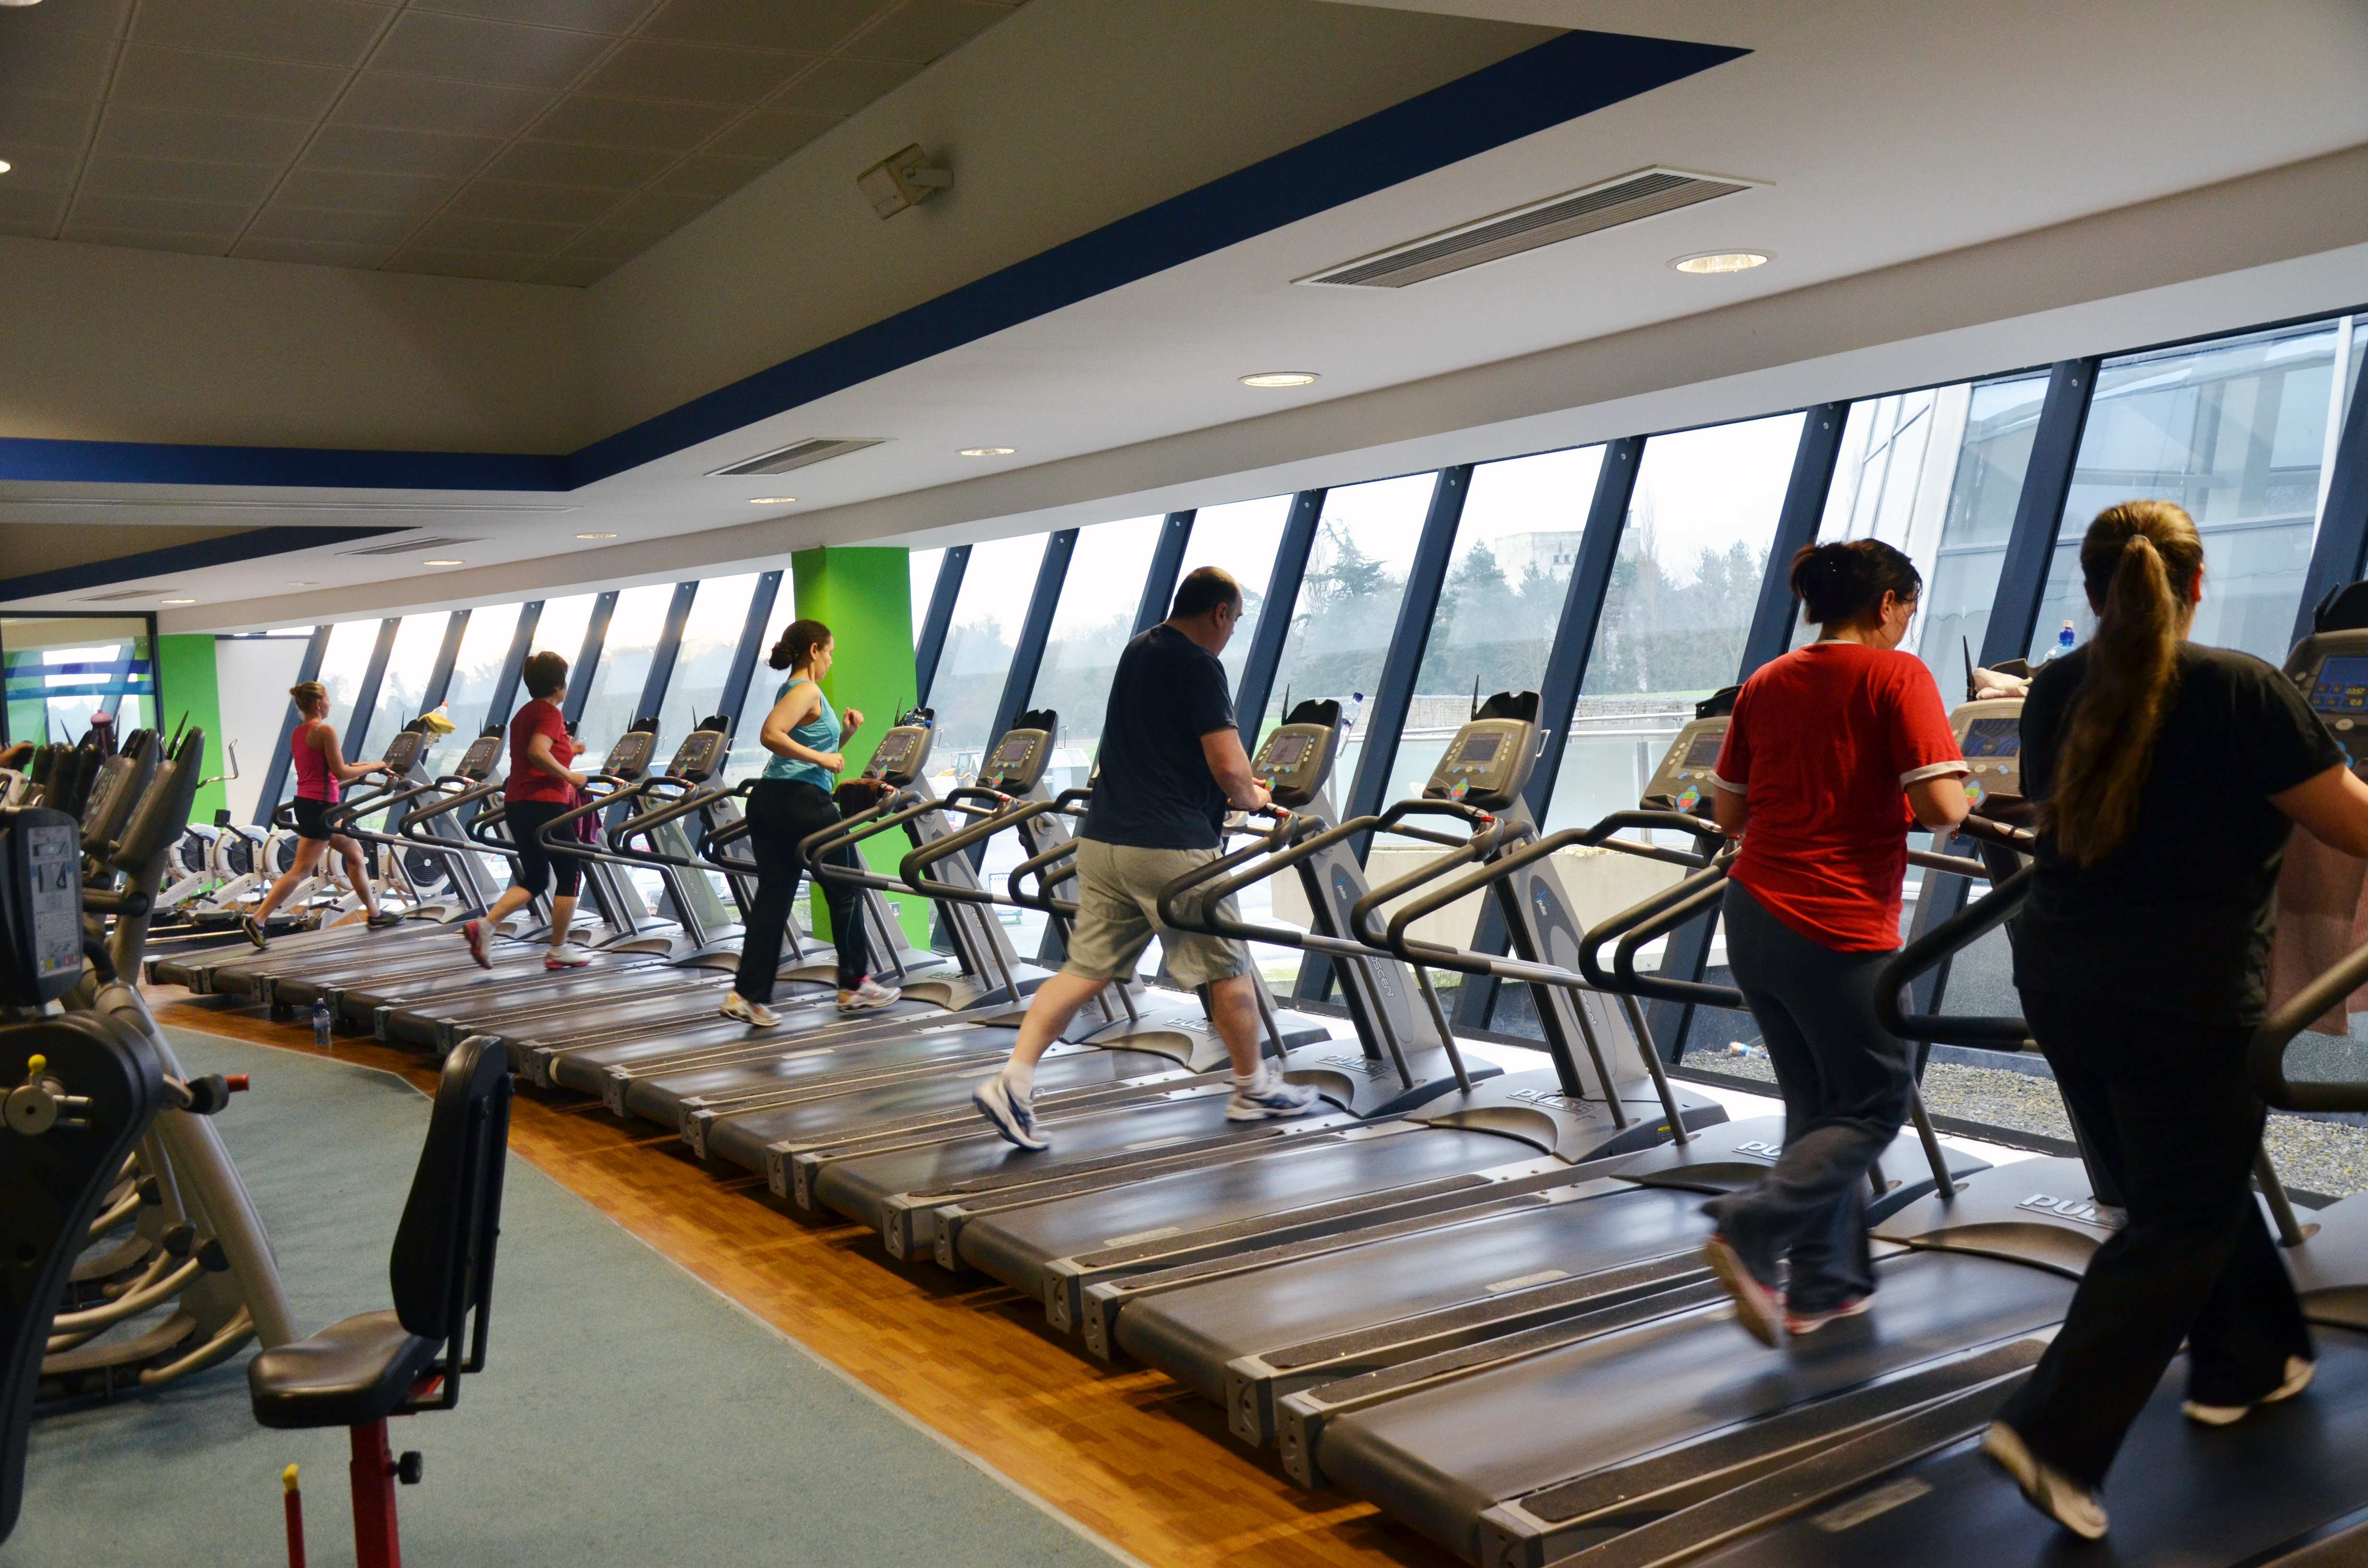 How To Reduce Treadmill Noise In An Apartment · Shrewd Fitness